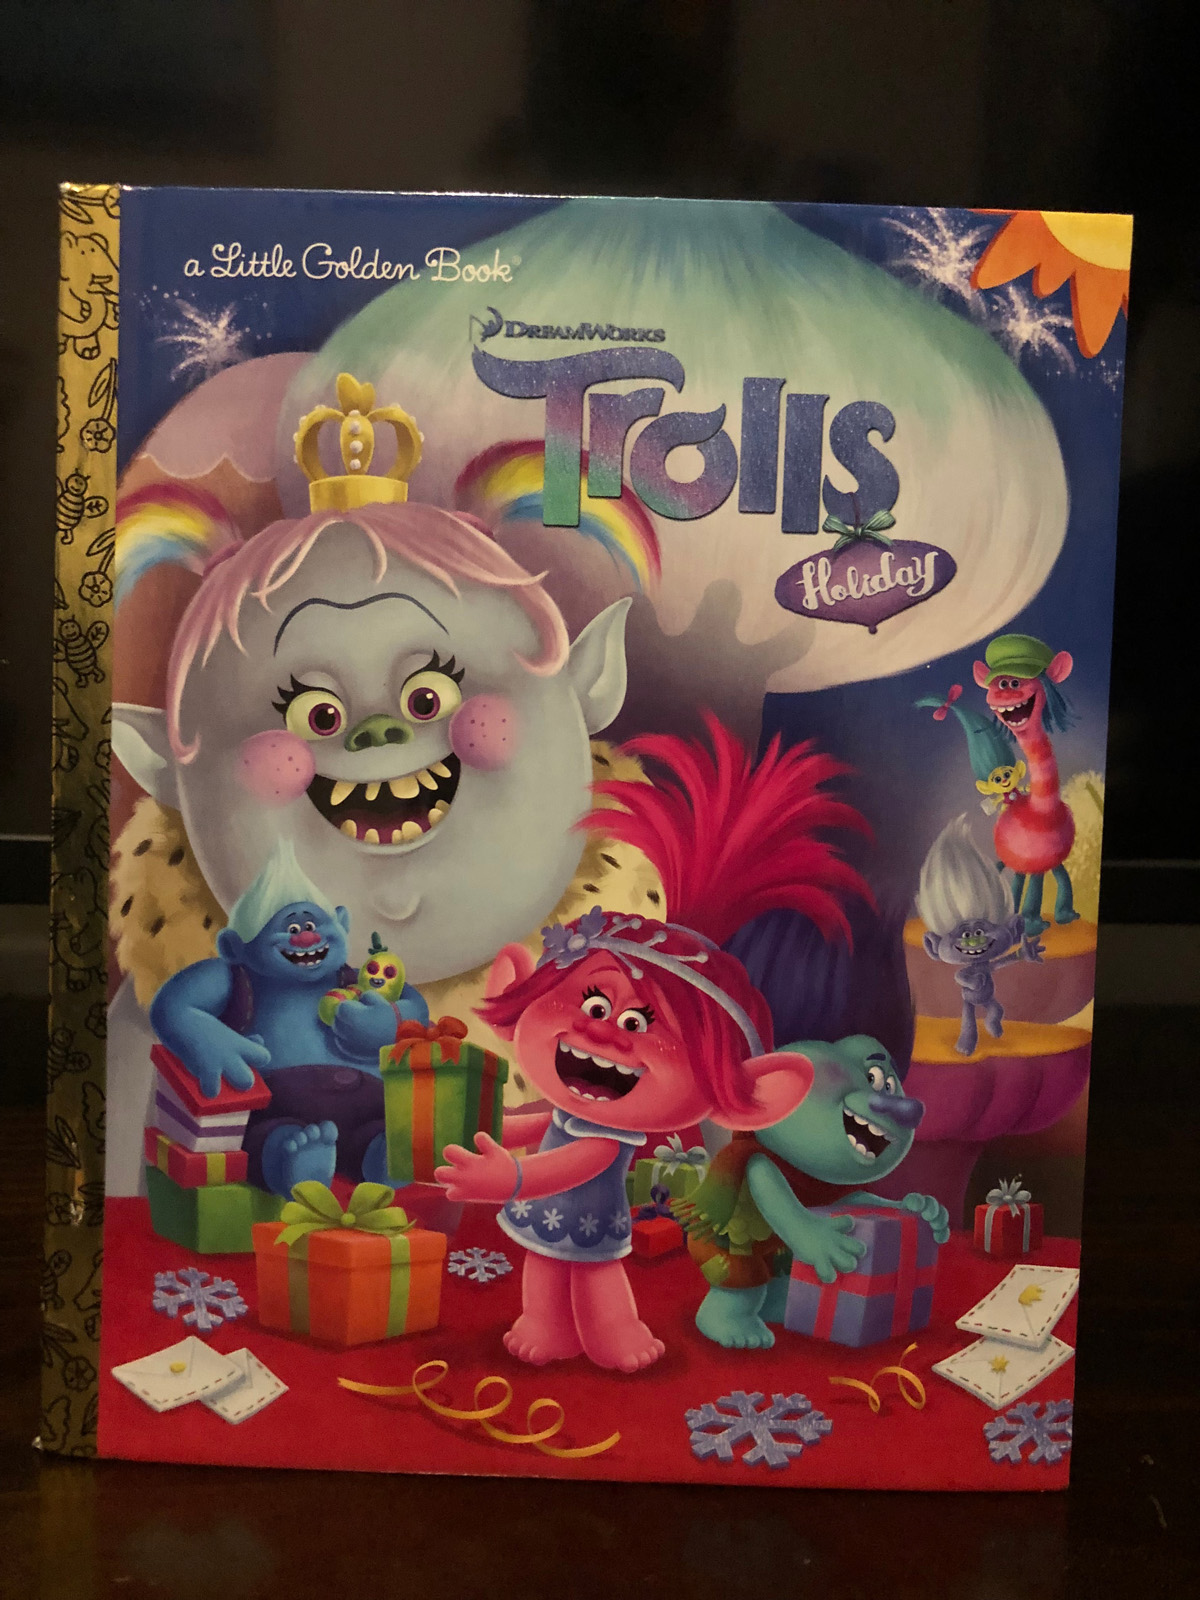 DreamWorks Trolls Holiday Little Golden Book